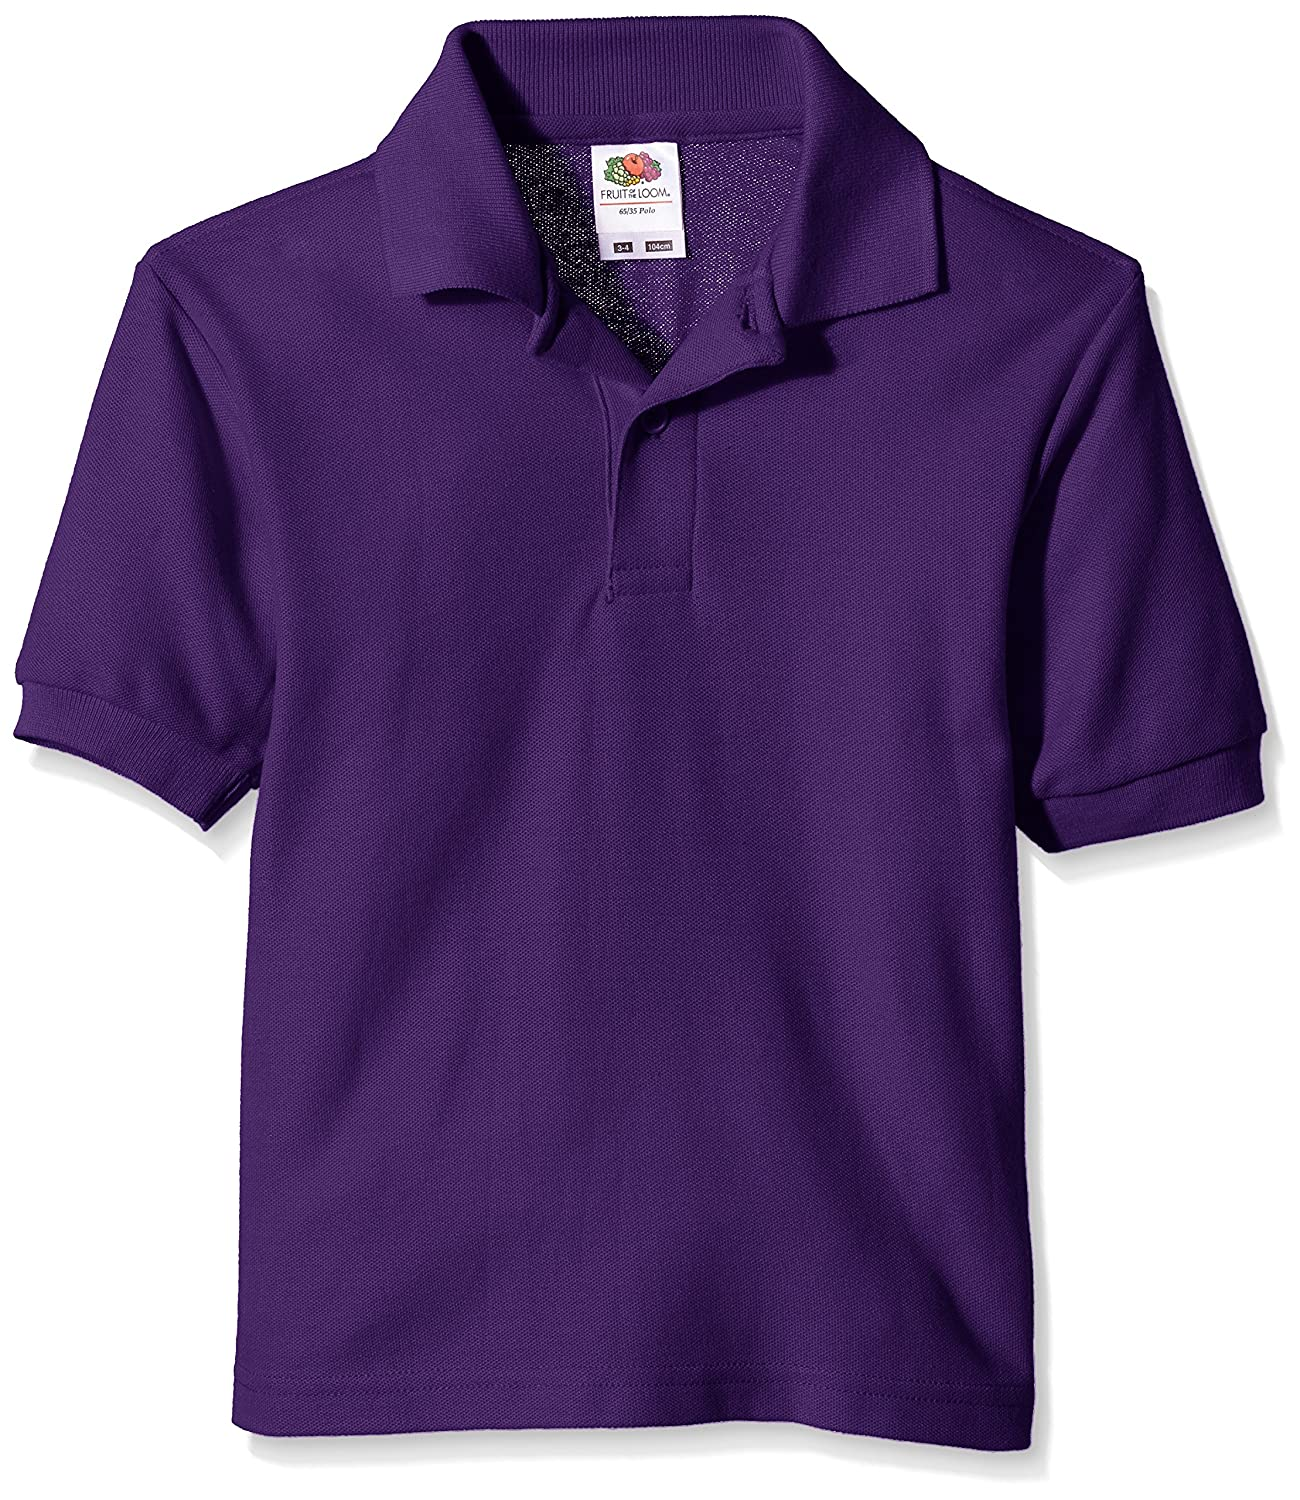 Fruit of the Loom Kids' Pique Polo Shirt 63-417-0